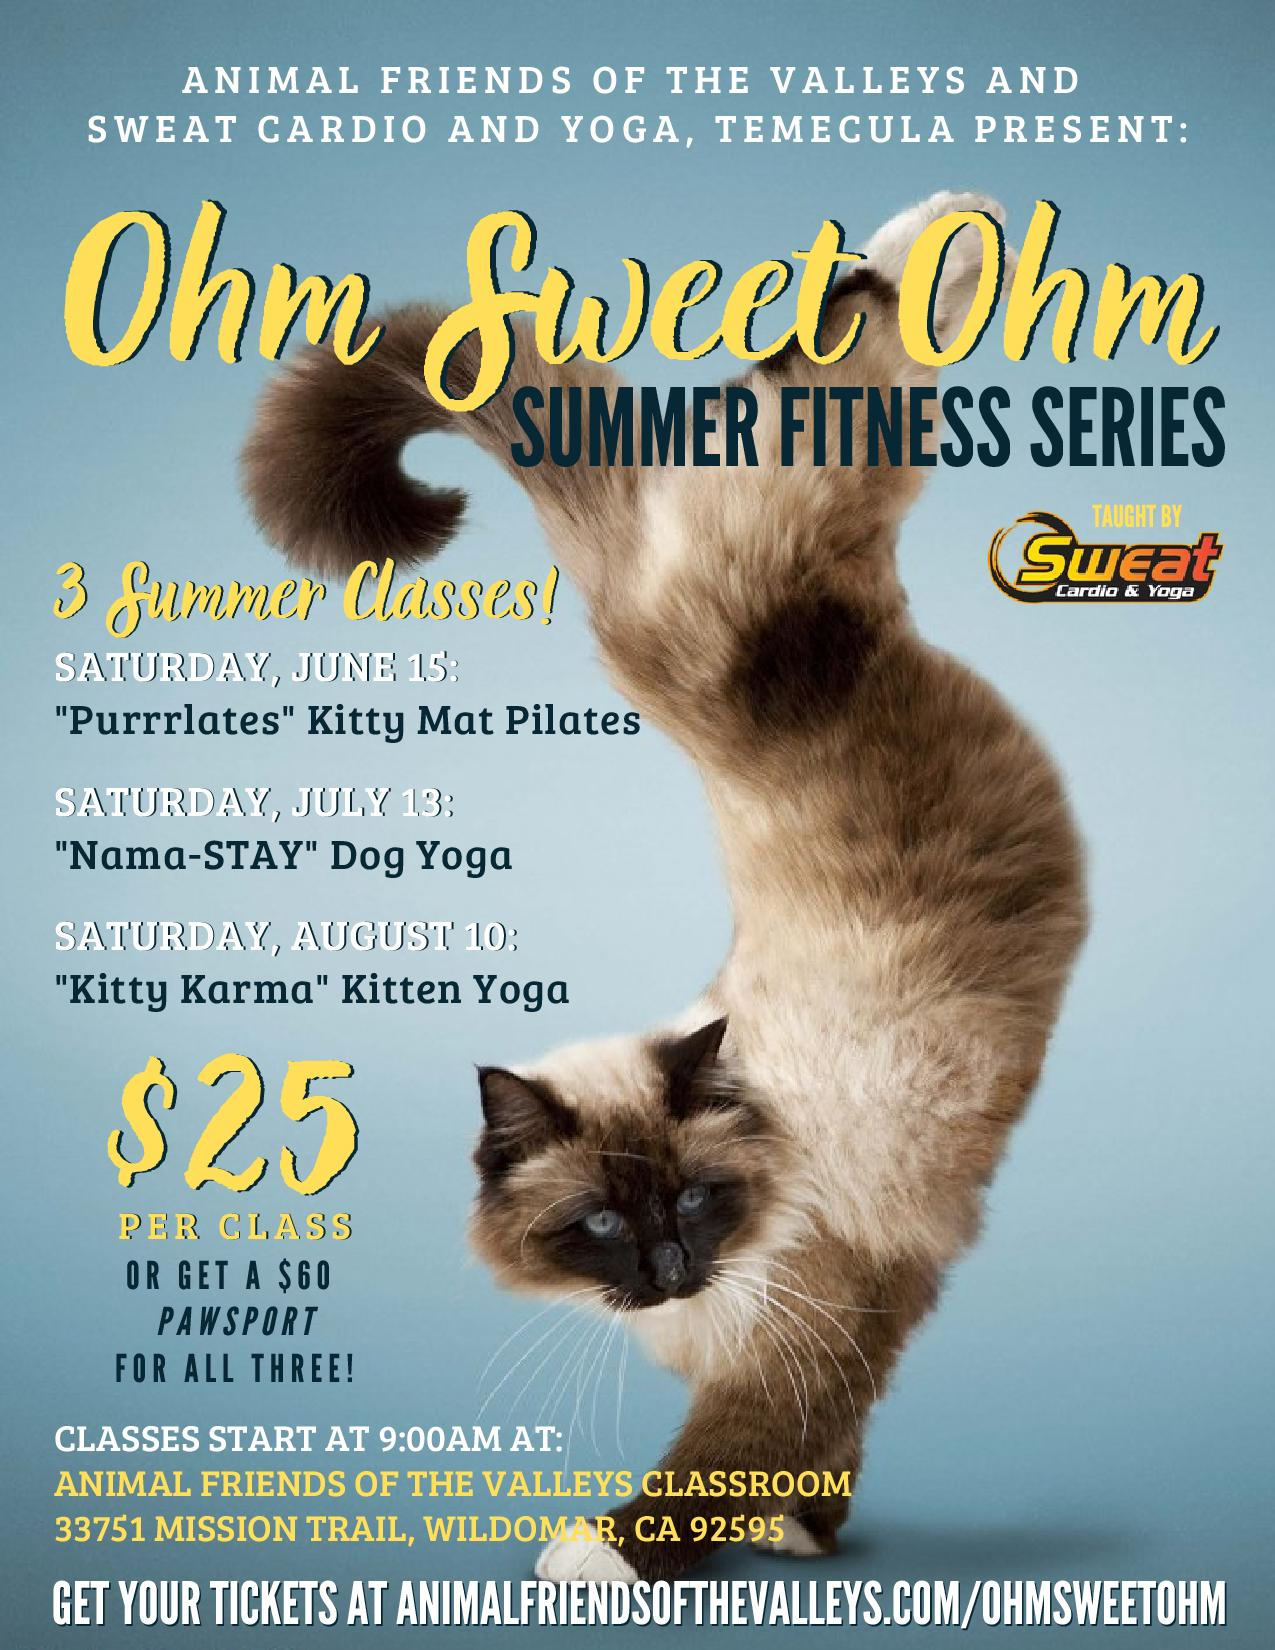 Animal Friends of the Valley - Ohm Sweet Ohm Summer Fitness Series @ Animal Friends of the Valley